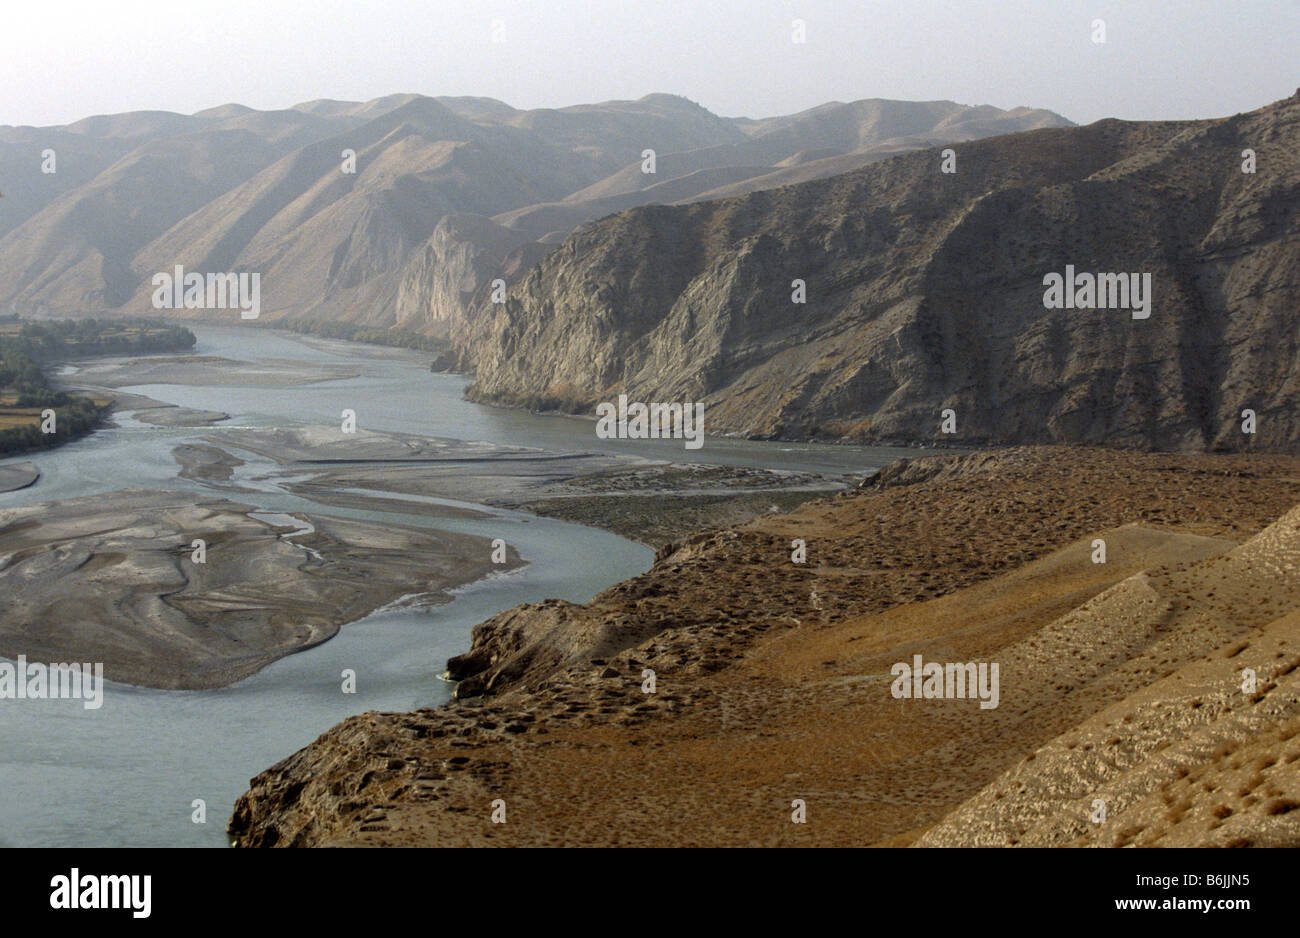 Afghanistan, Kunduz area, Ai Khanum, on the Amu Daryu river, Looters' holes, founded in 4th century BC Stock Photo